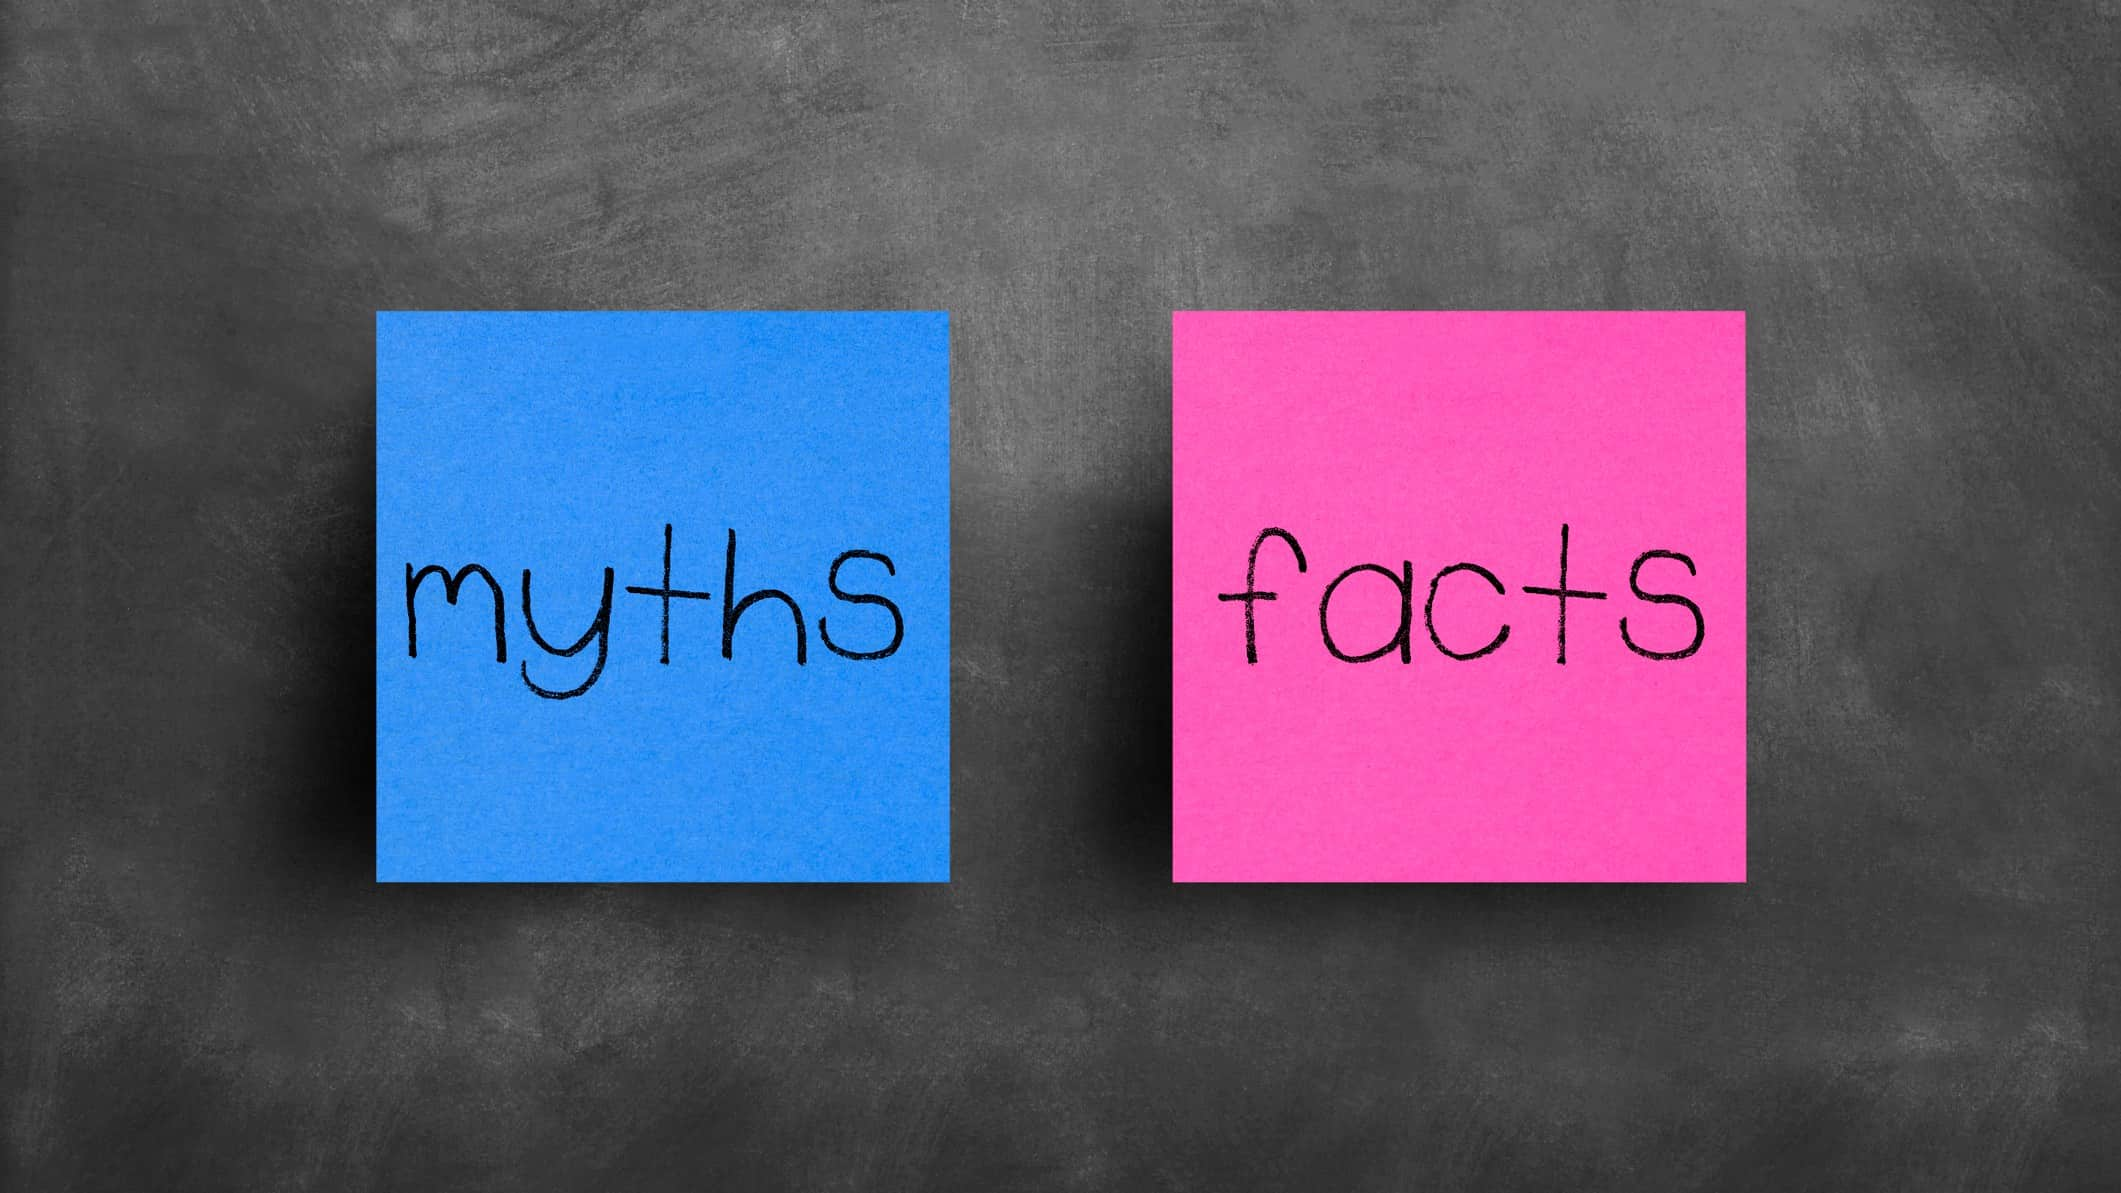 Blue post-it note with 'myths' written on it next to pink post-it note with 'facts' written on it